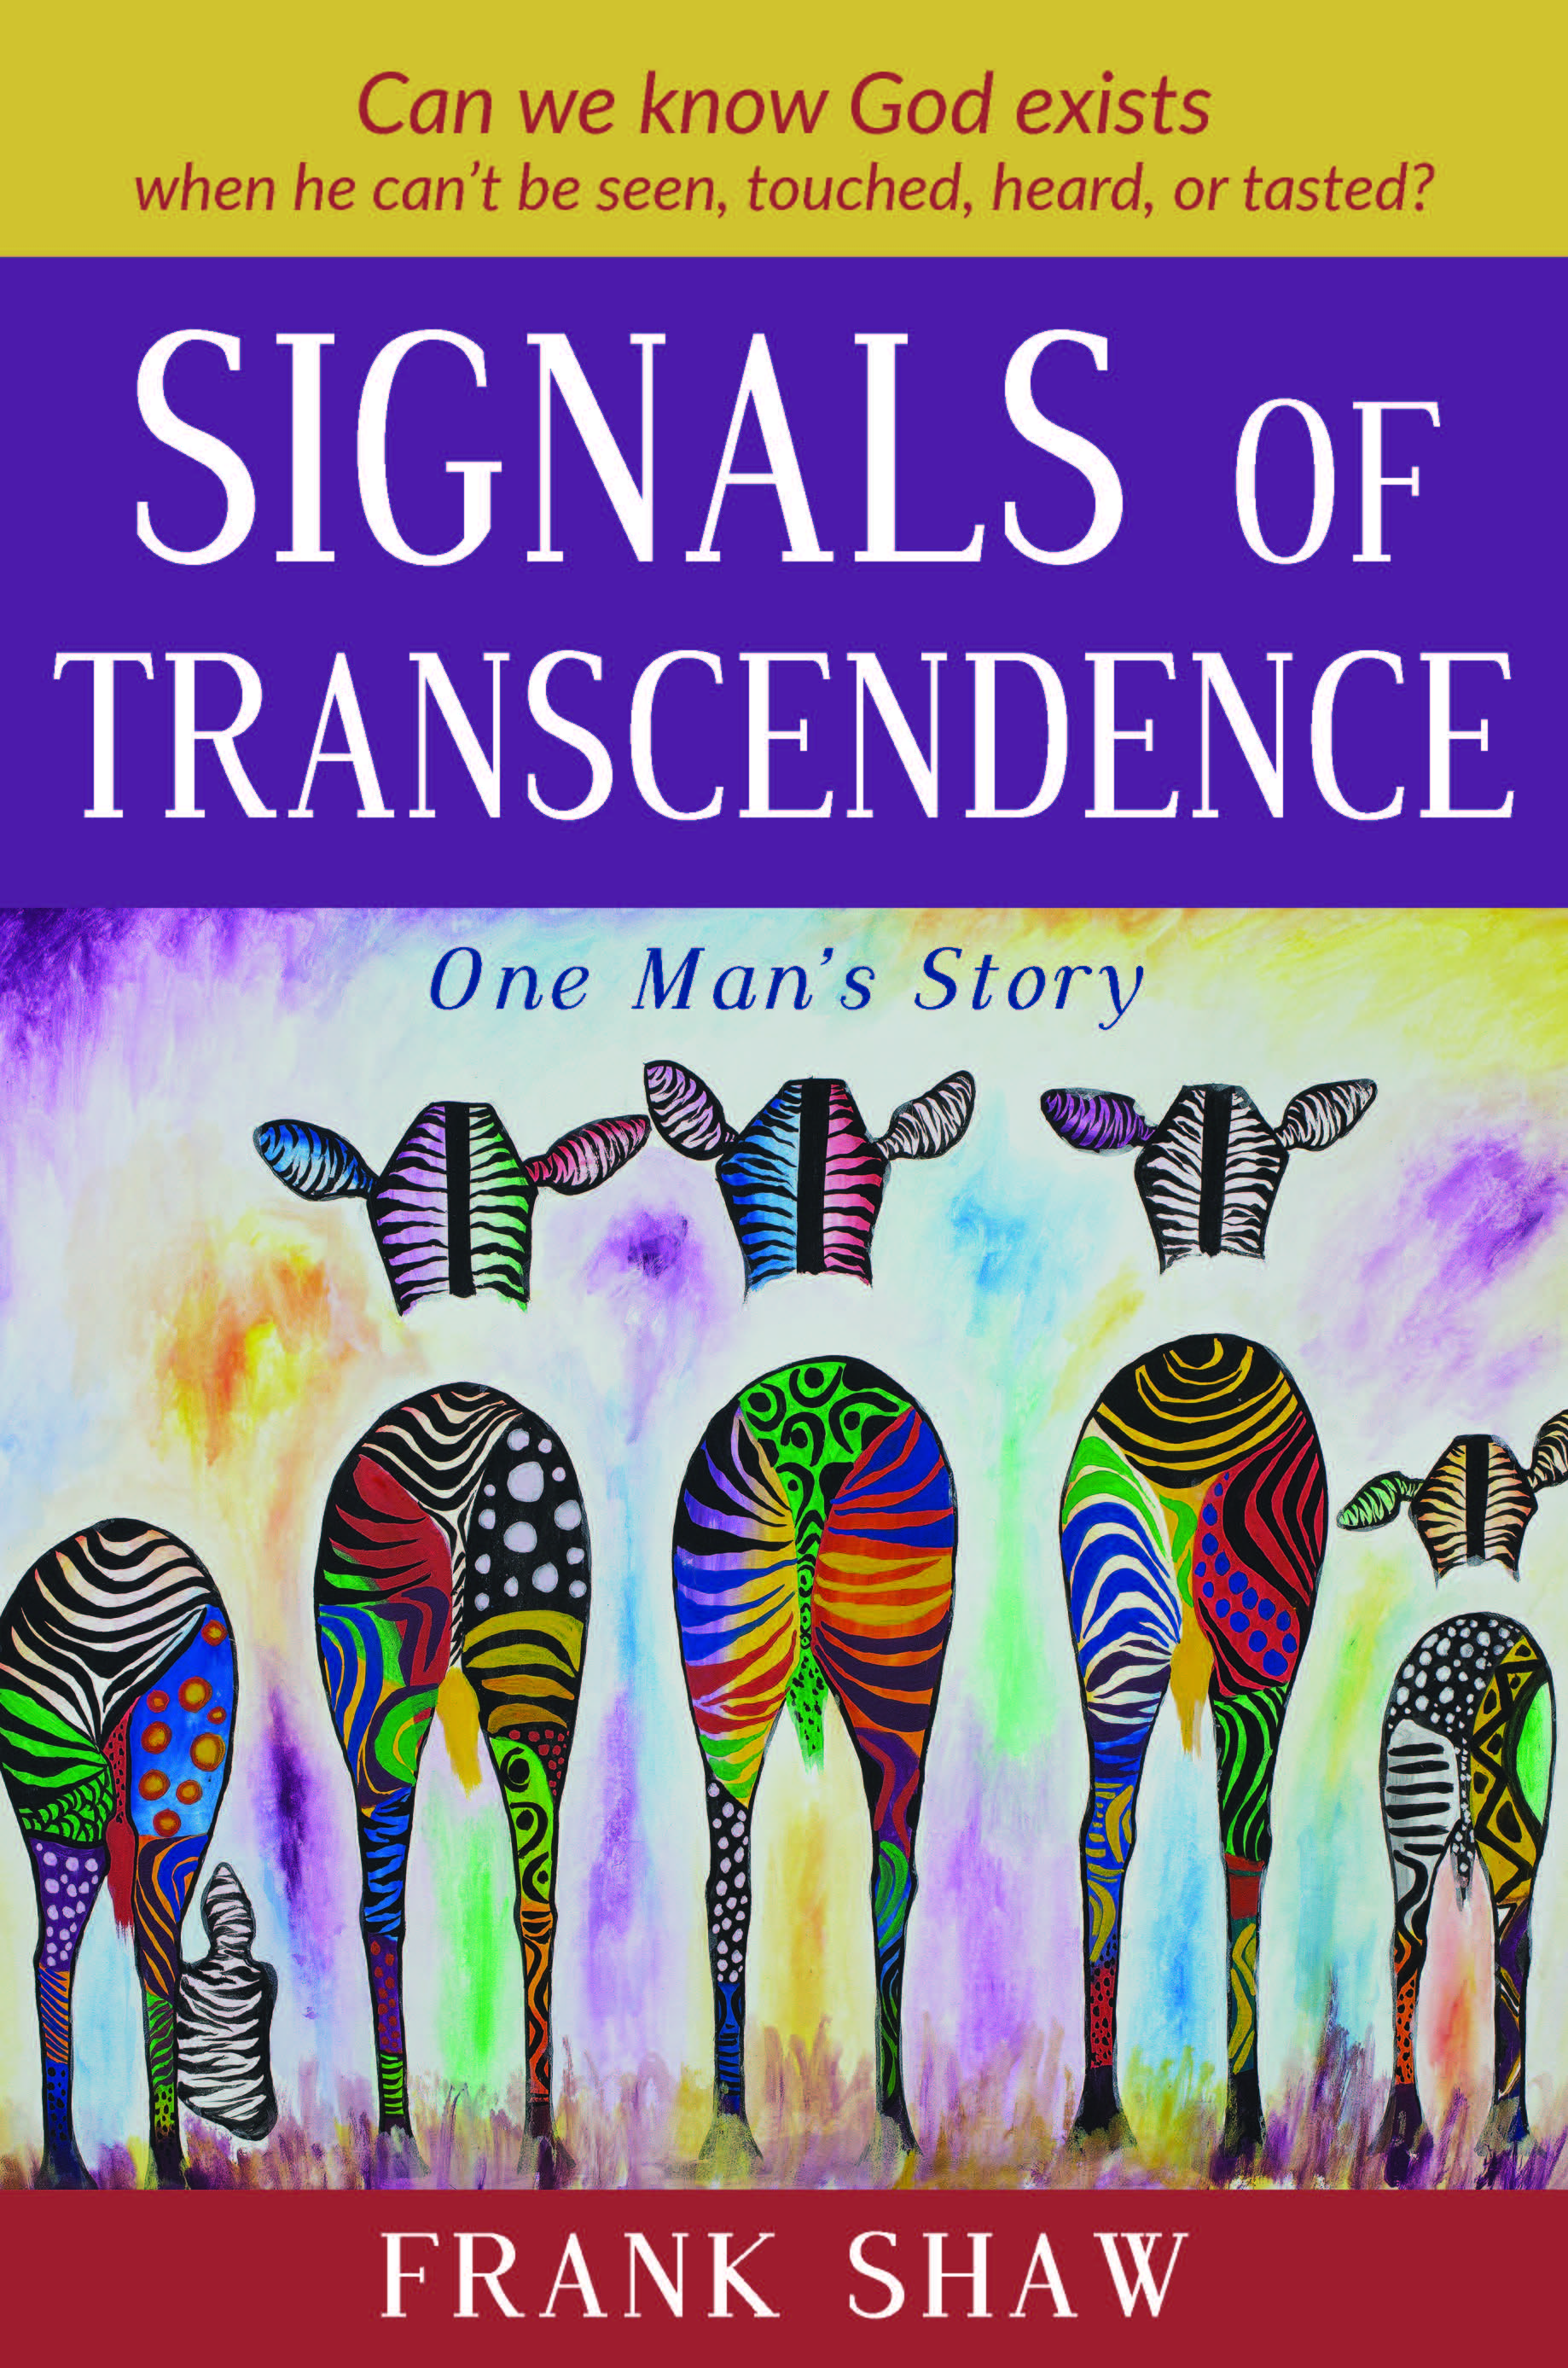 Signals of Transendence